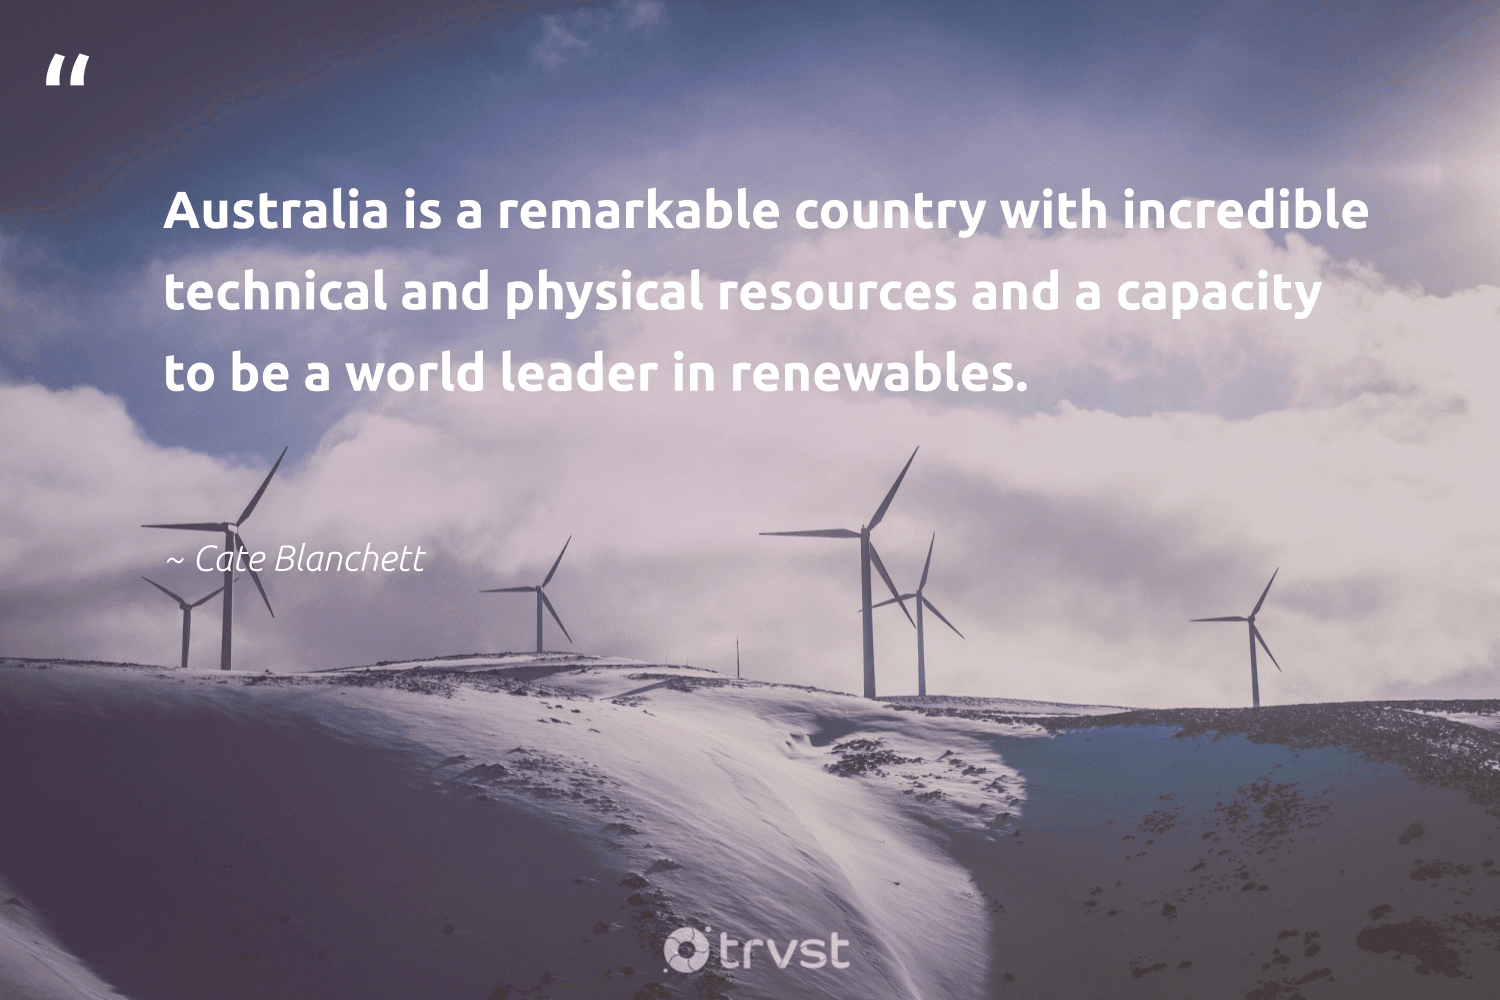 """""""Australia is a remarkable country with incredible technical and physical resources and a capacity to be a world leader in renewables.""""  - Cate Blanchett #trvst #quotes #renewableenergy #australia #renewables #100percentrenewable #planetearth #sustainable #socialchange #switchfuelenergy #carboncapture #gogreen"""